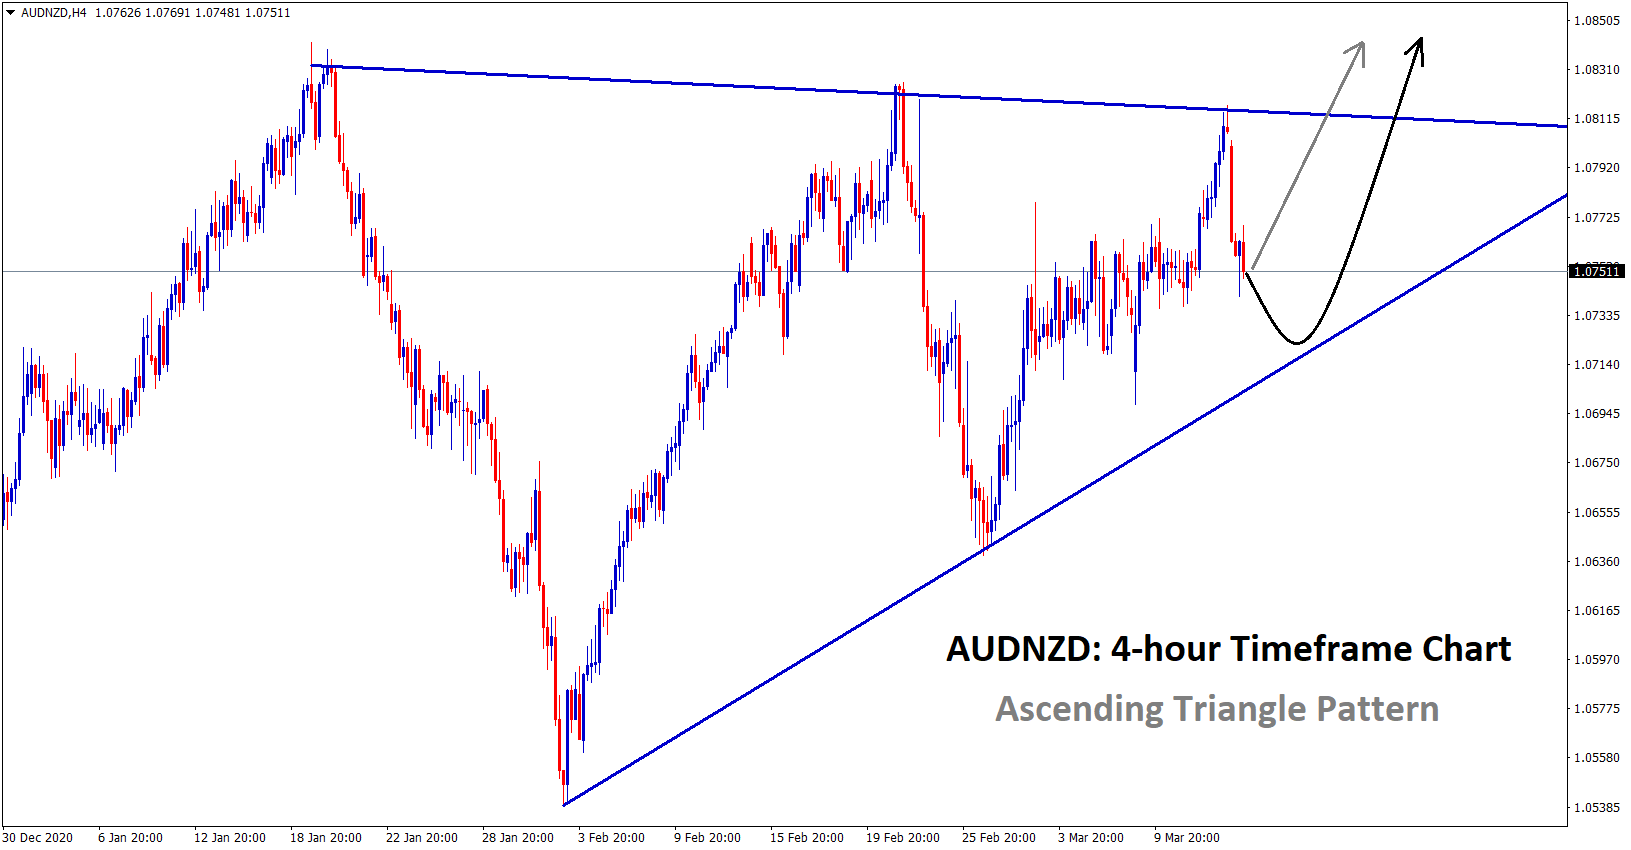 Ascending Triangle pattern in the AUDNZD